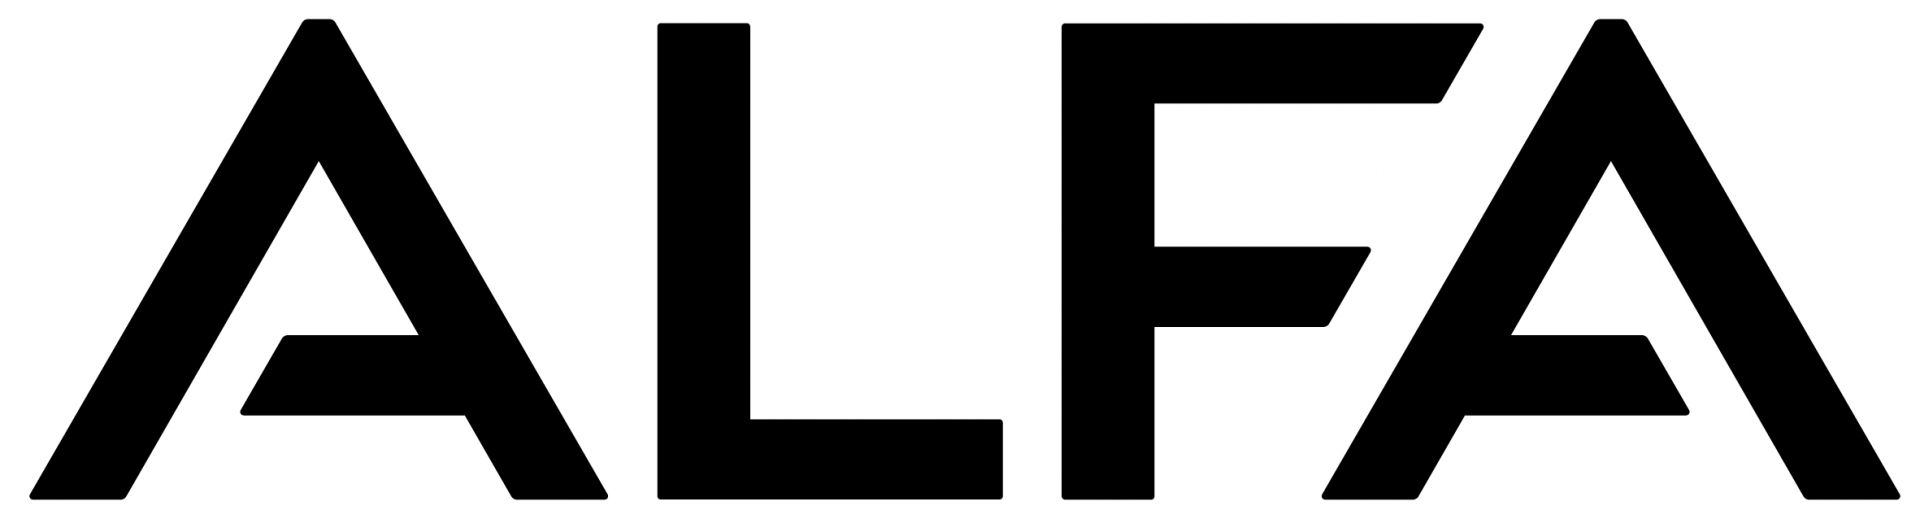 Alfa-Logo-Wordmark-Black-CMYK